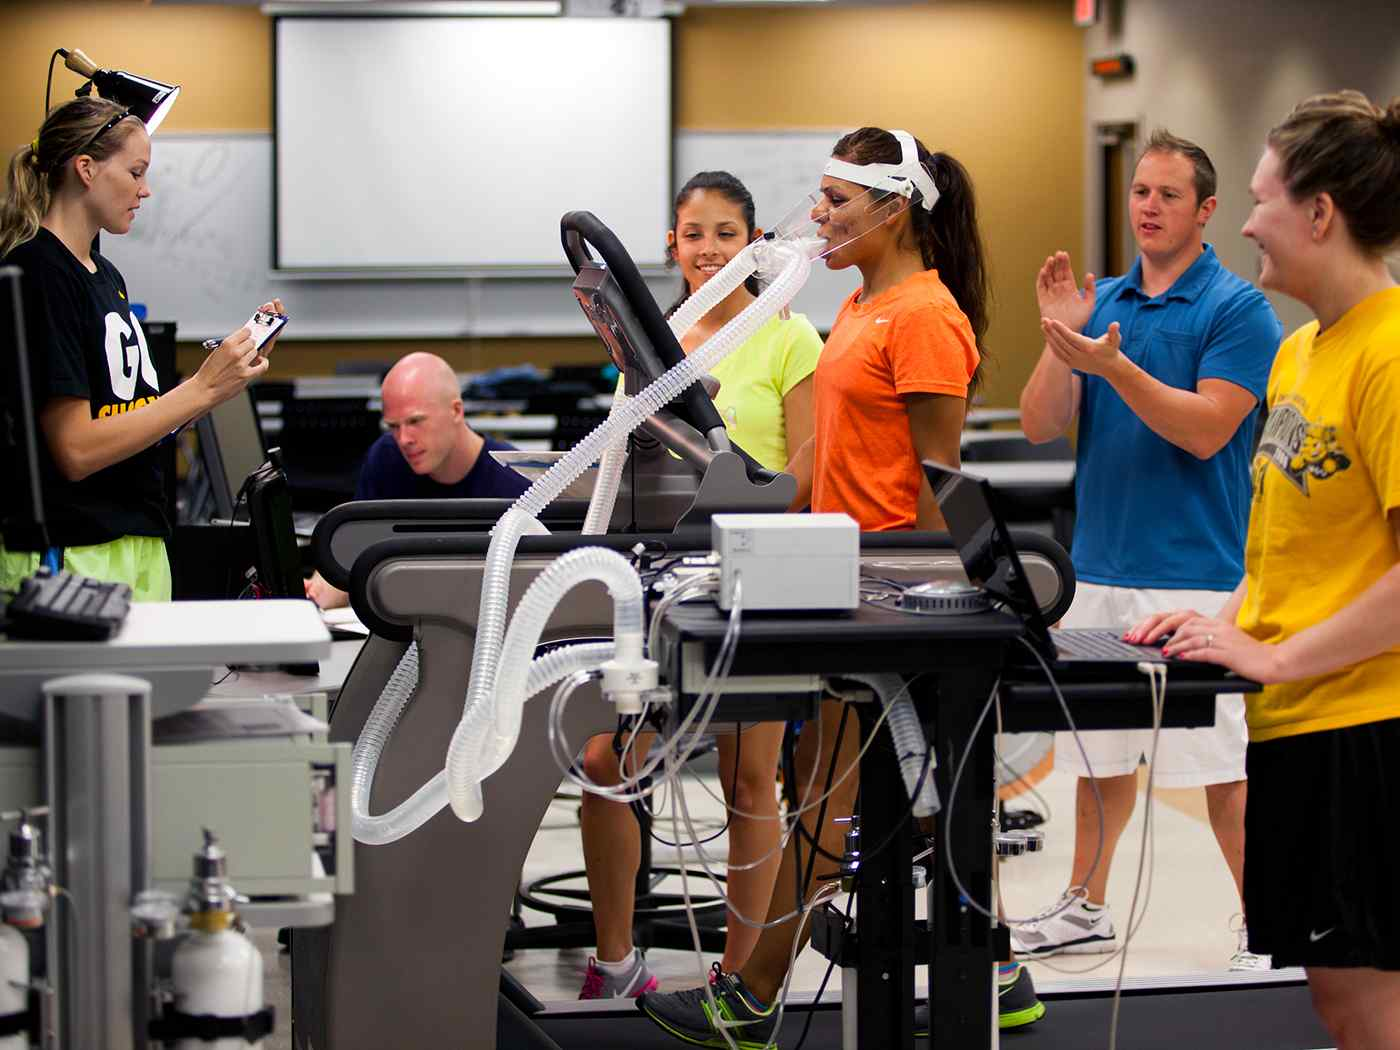 Exercise students in the lab.